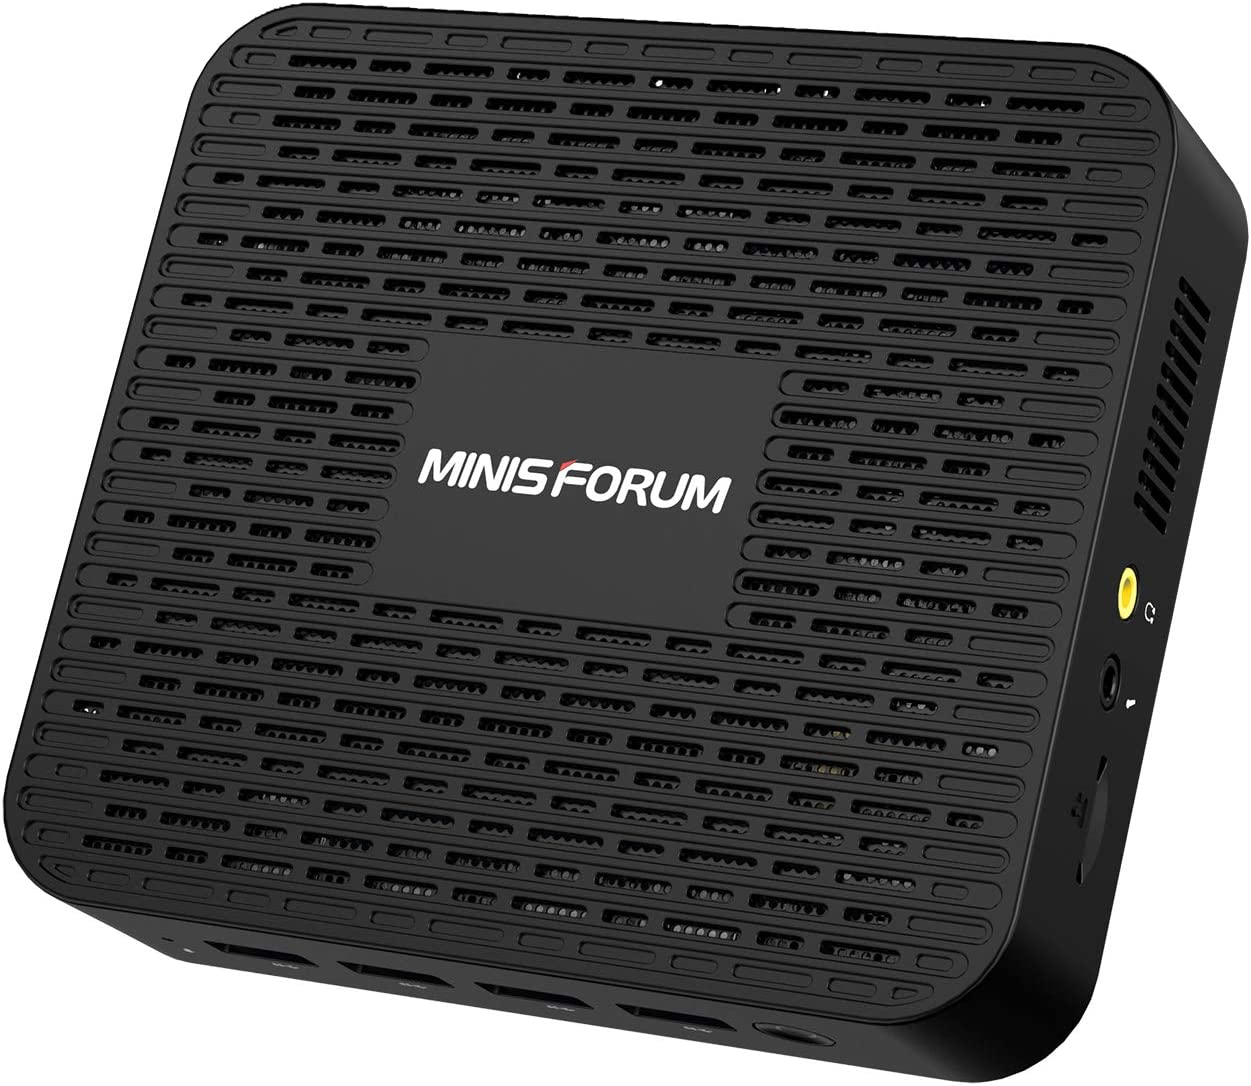 Mini PC 8GB LPDDR4 SSD 256GB Procesador Intel Celeron J4125 Quad Core (hasta 2.7GHz) Mini computadora con 4X Puertos USB 3.0, 2X Gigabit Ethernet, 4K HDMI/Mini DP, Wi-Fi de Doble Banda, BT 4.2